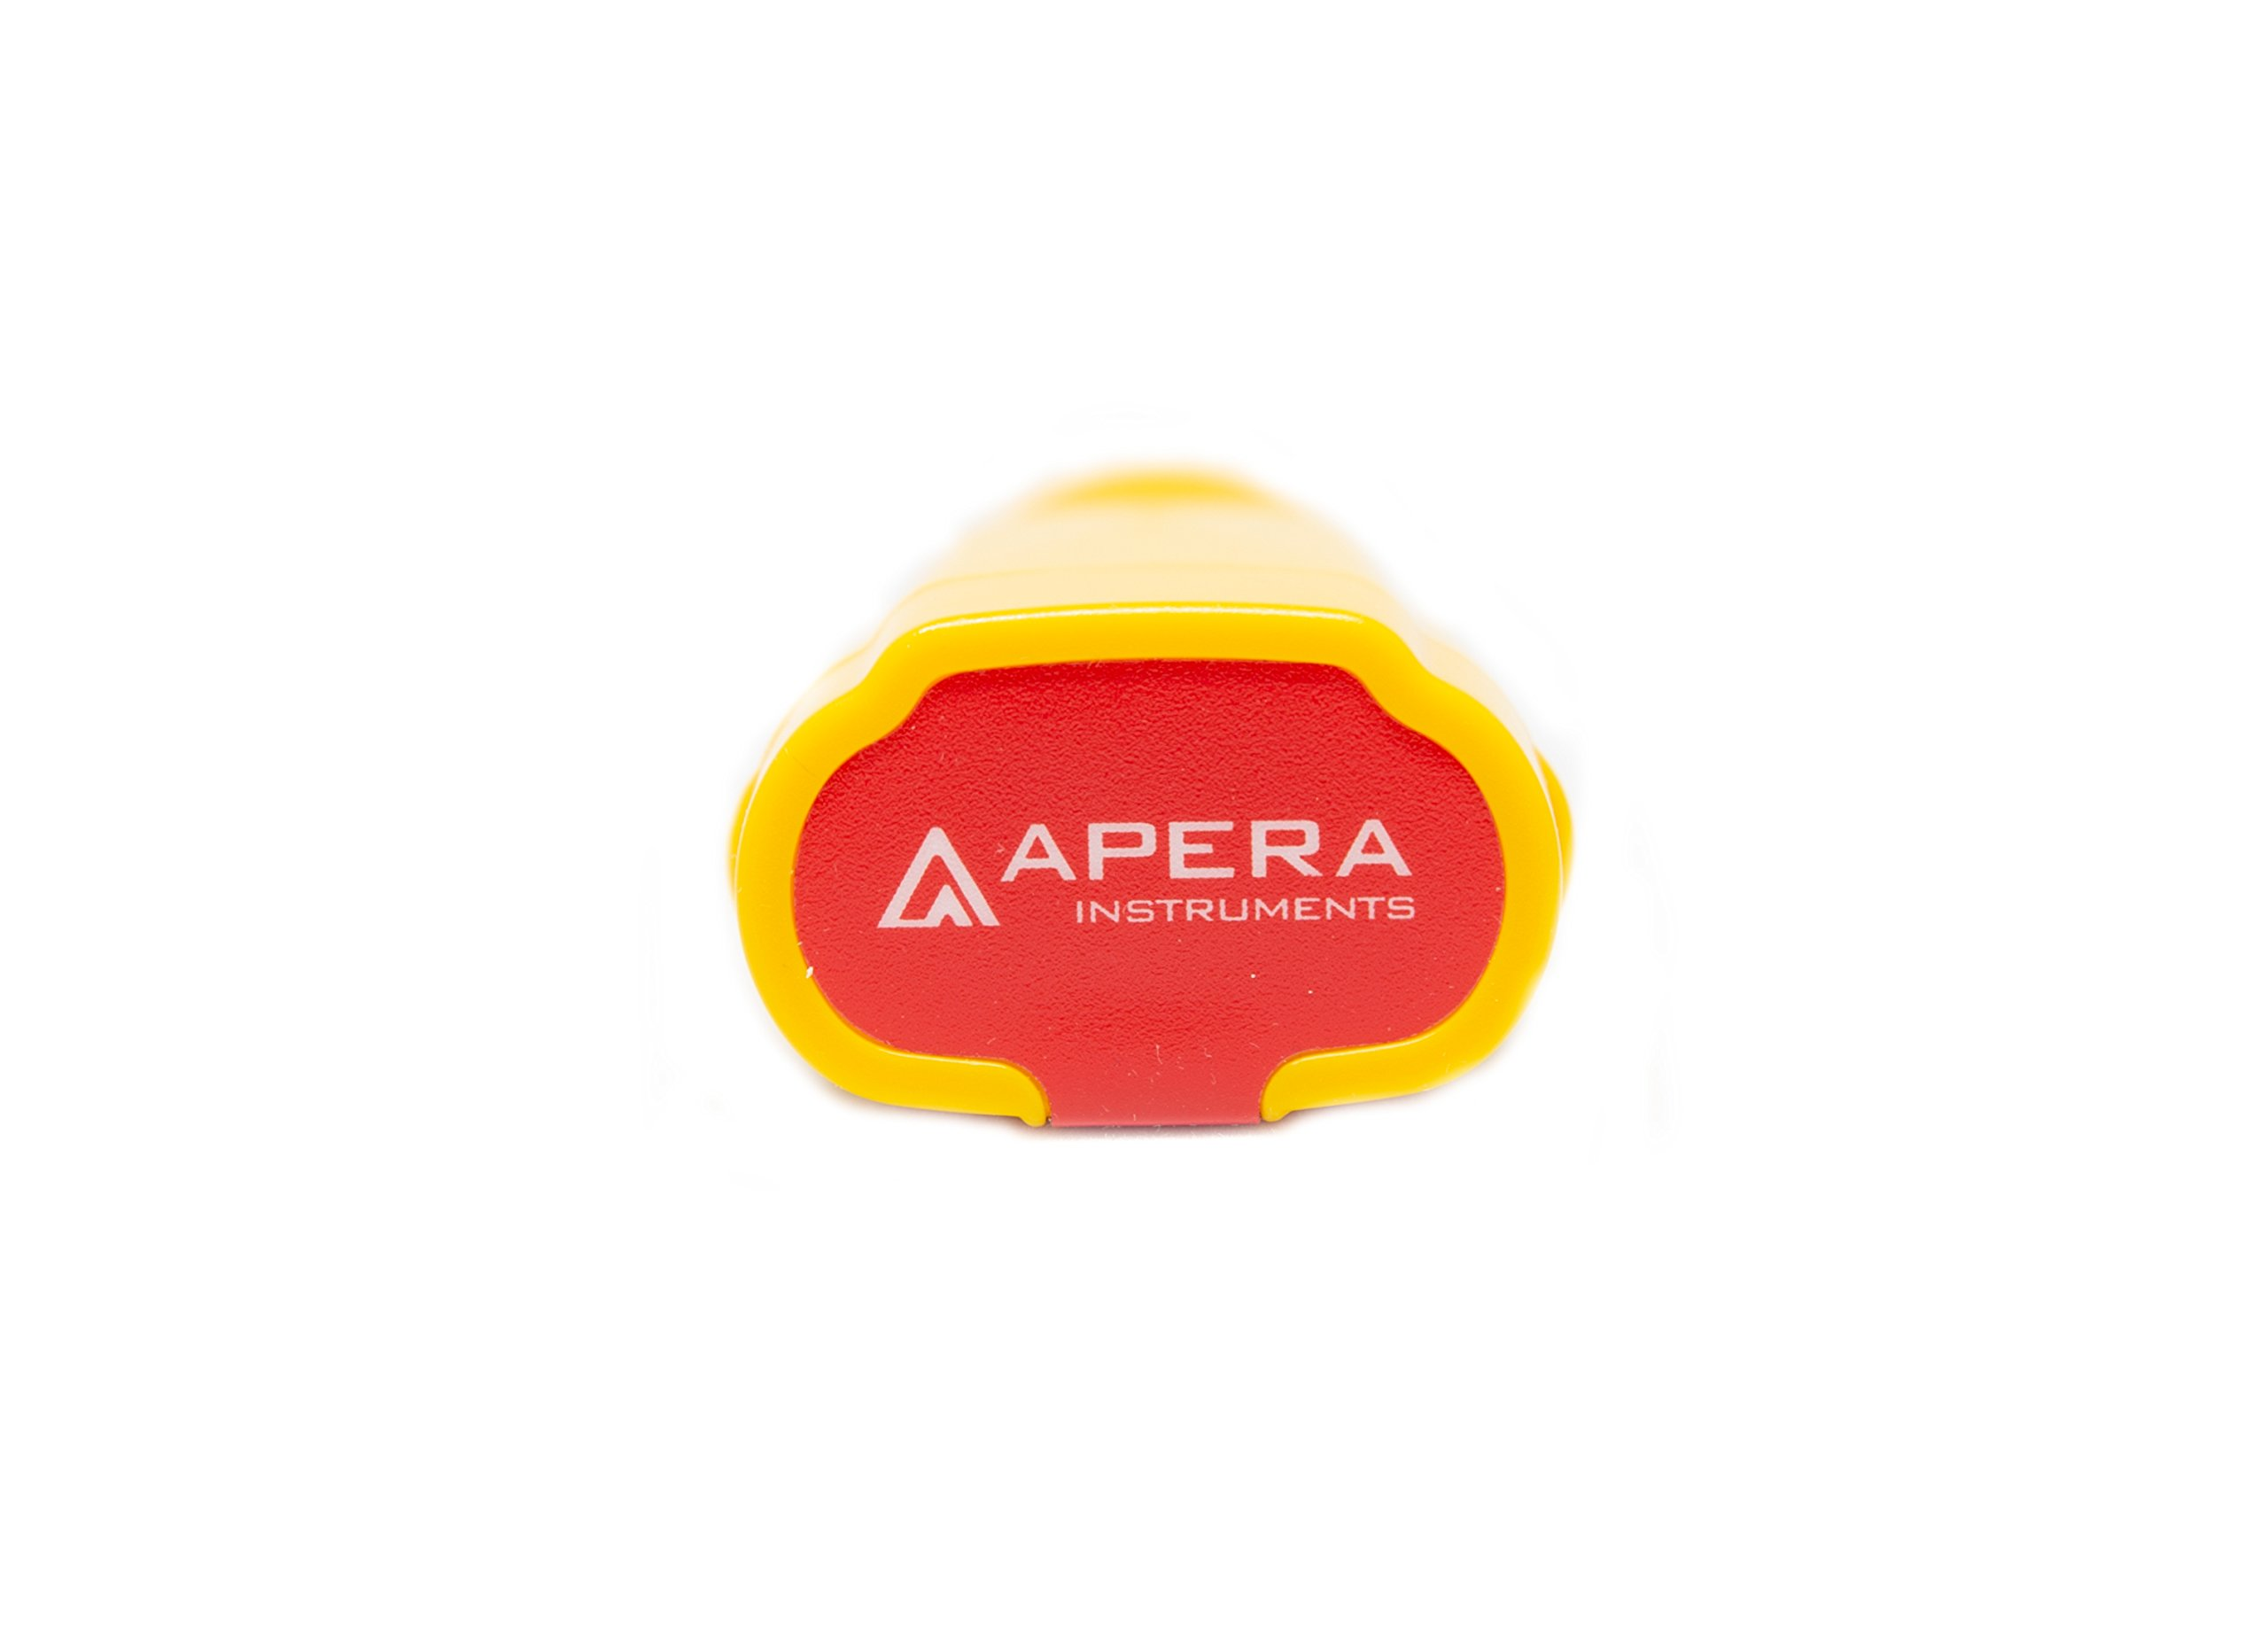 Apera Instruments AI235 5052 Saltwater Salinity Tester (0-100 PPT, ±1.5% Accuracy) for Aquariums, aquaculture, Environmental Monitoring, Stainless Steel/Plastic by Apera Instruments, LLC (Image #2)